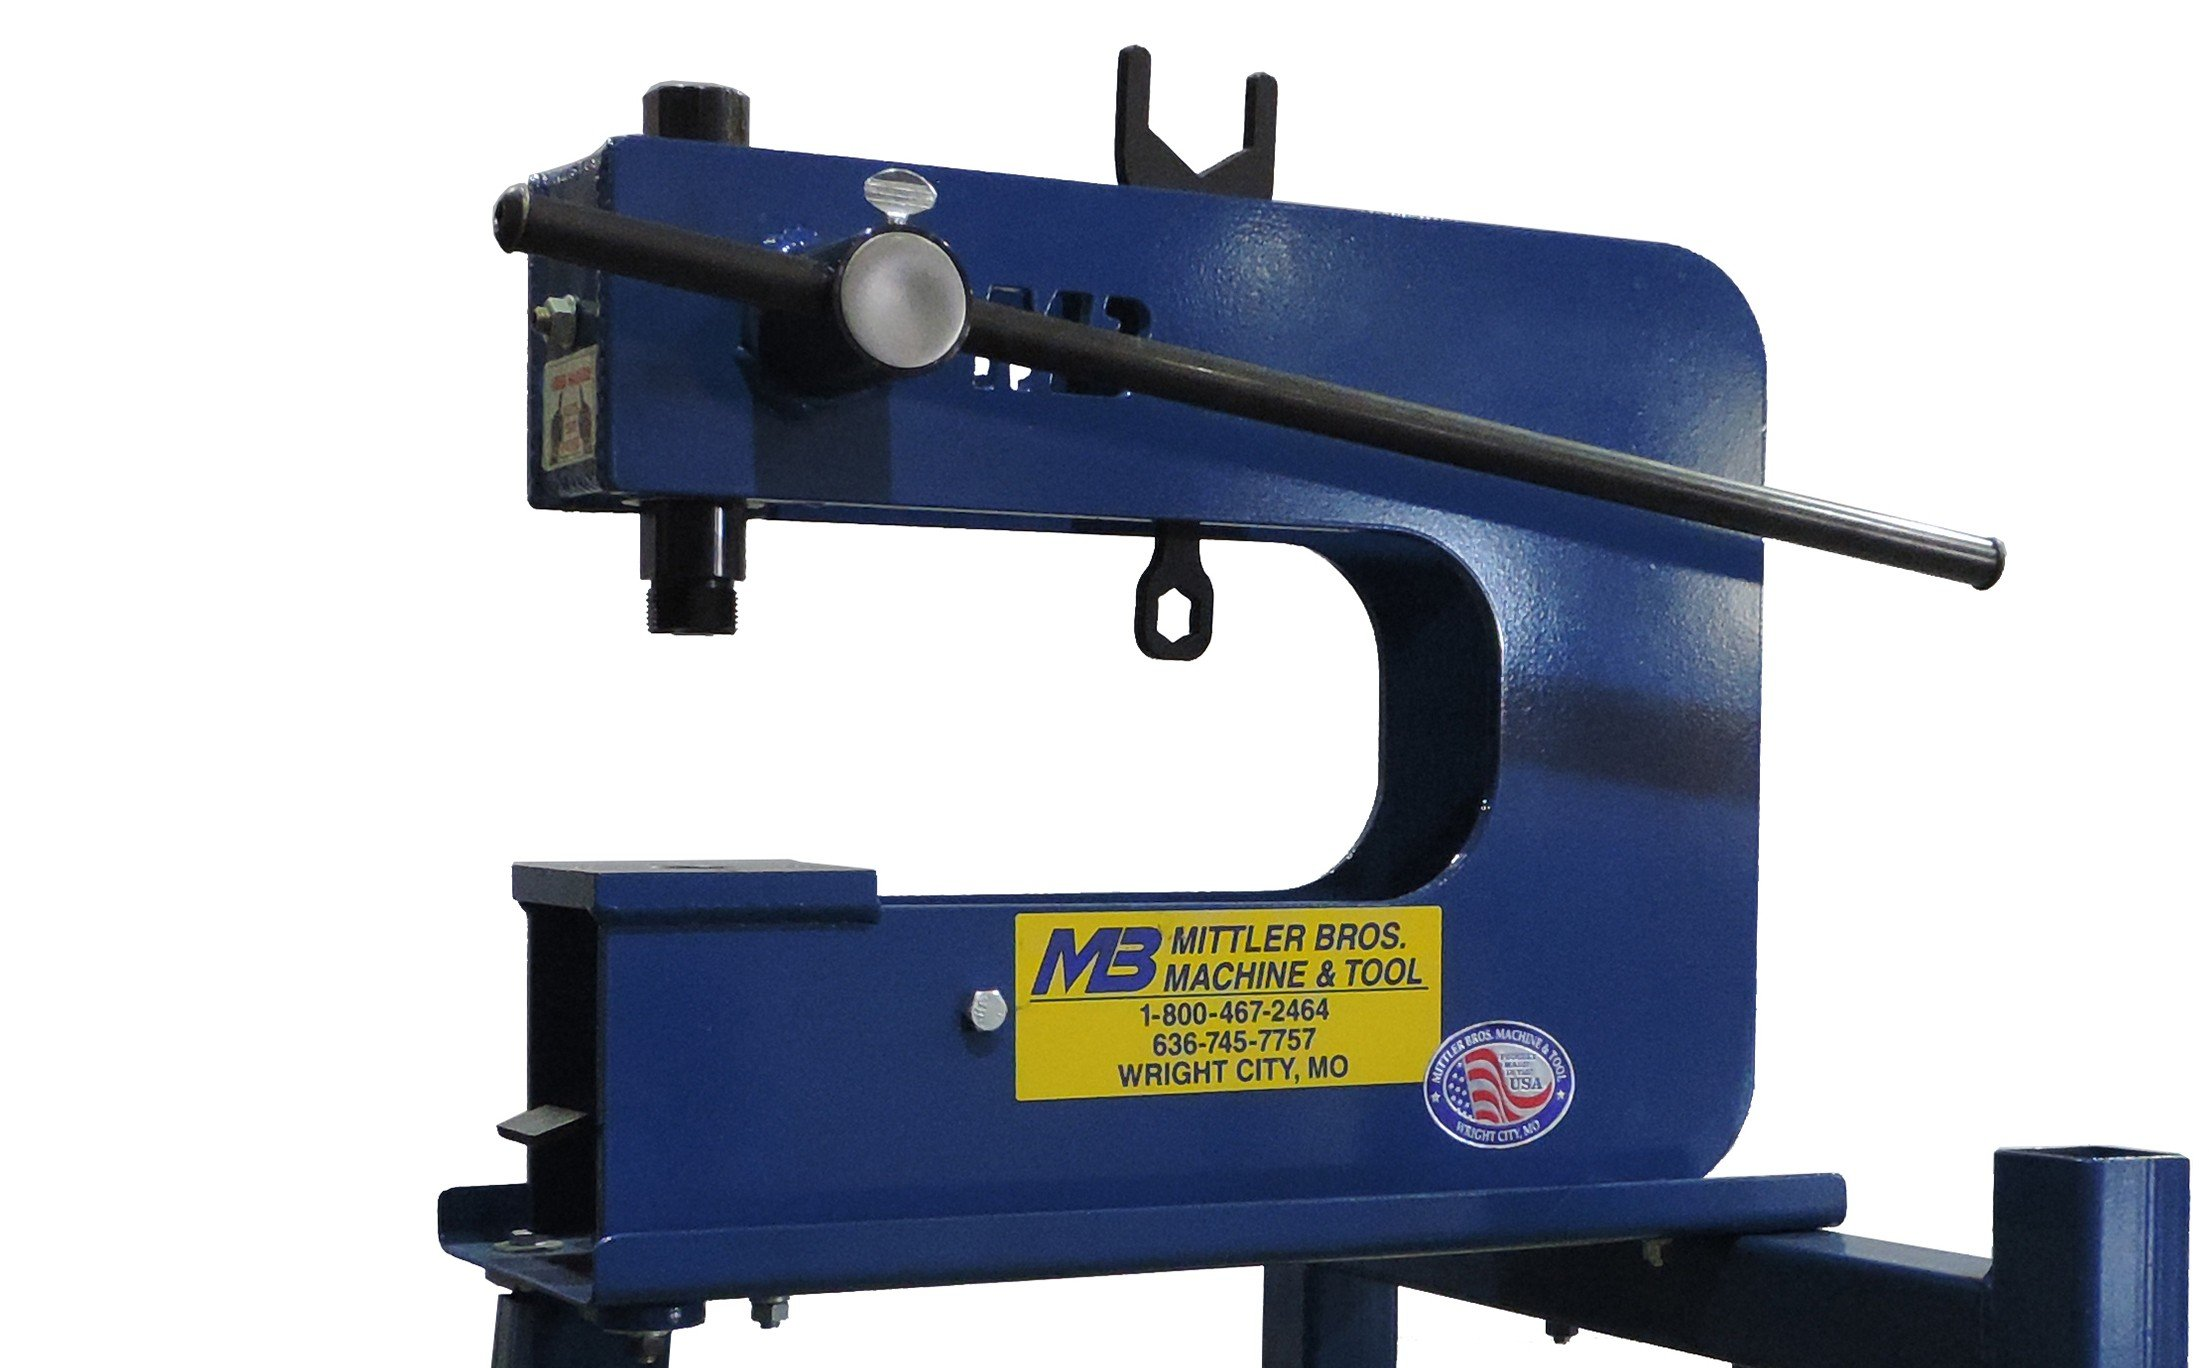 Mittler Bros. Machine & Tool - Manual Bench Press